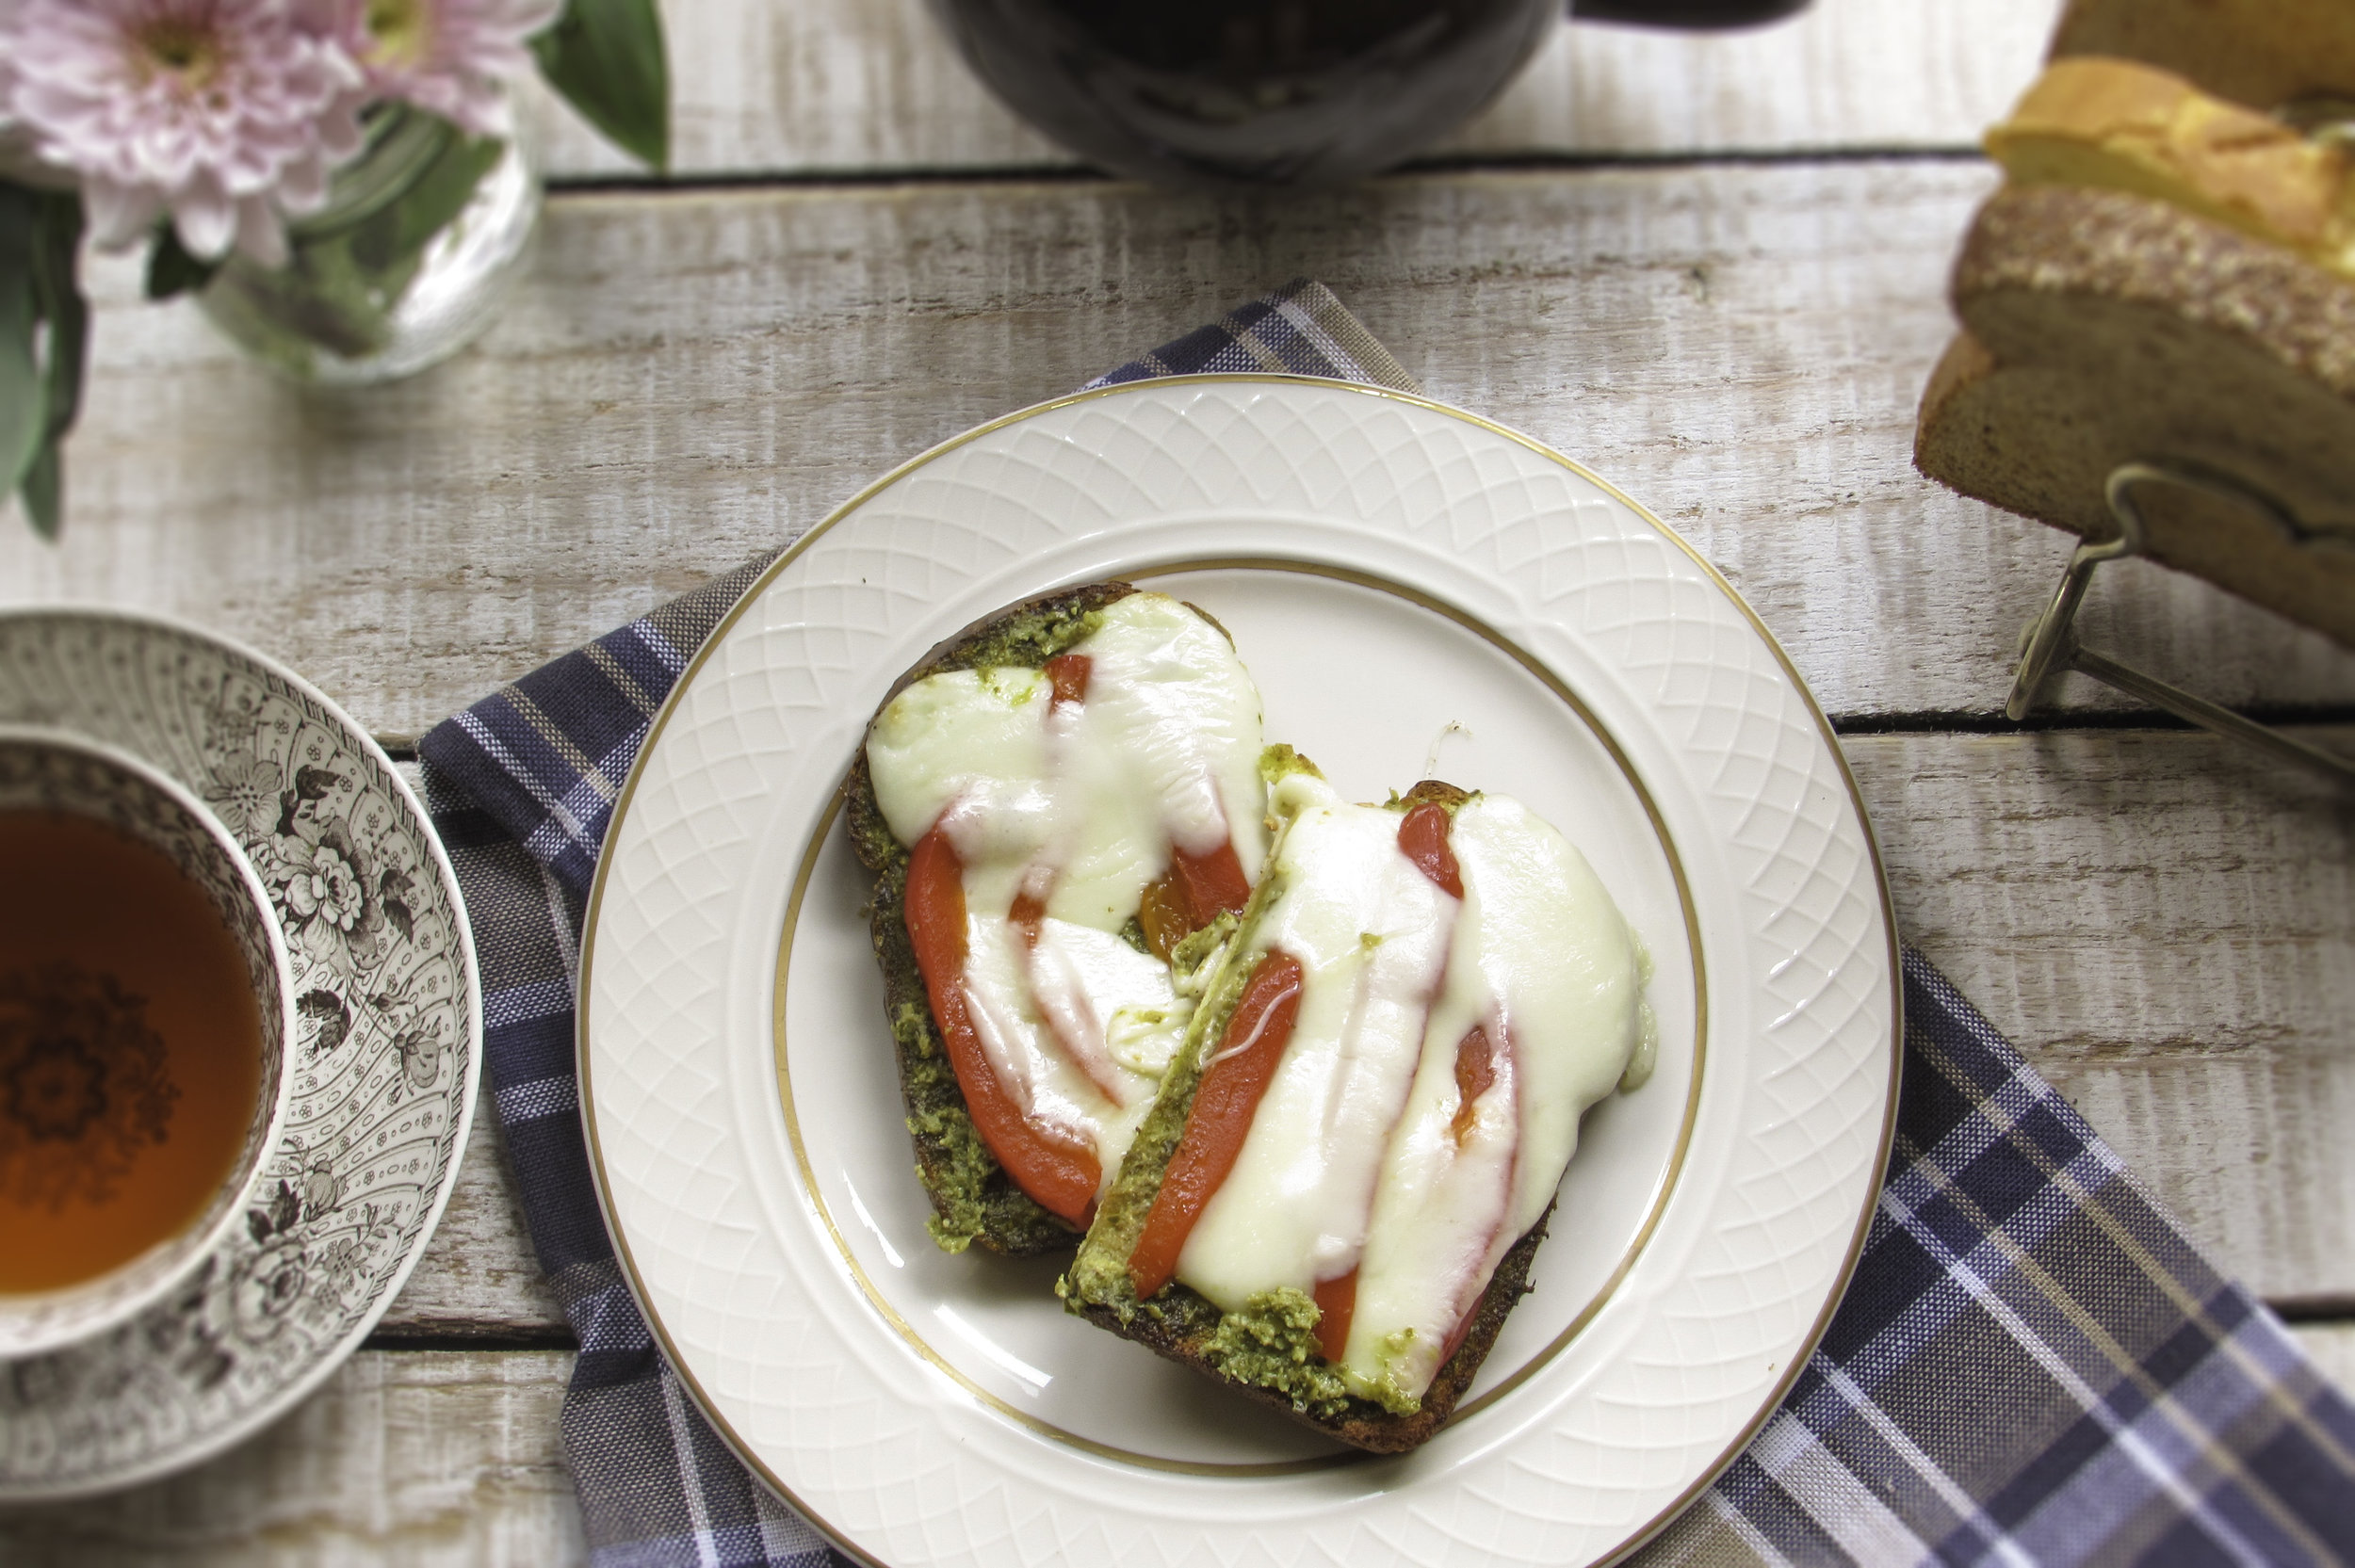 Pesto, roasted red pepper slices and mozzarella cheese